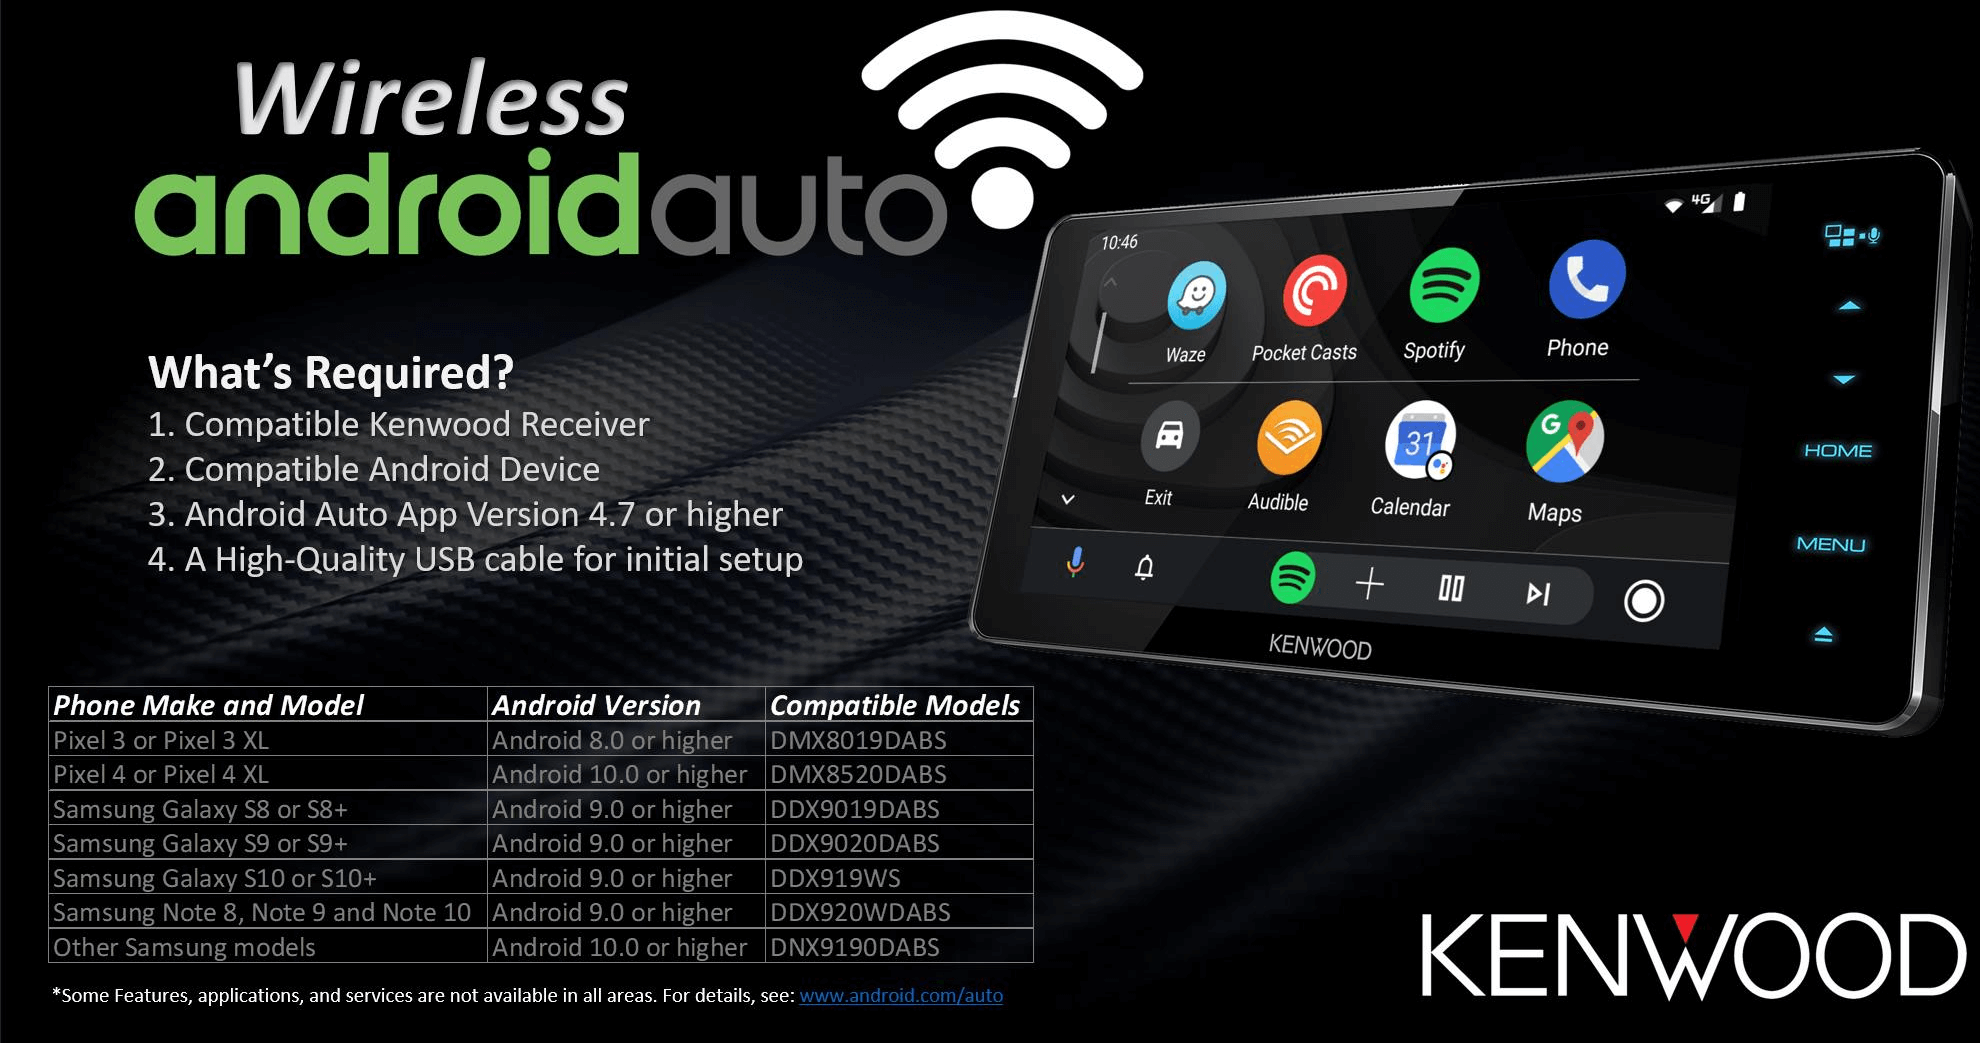 Kenwood wireless androidauto